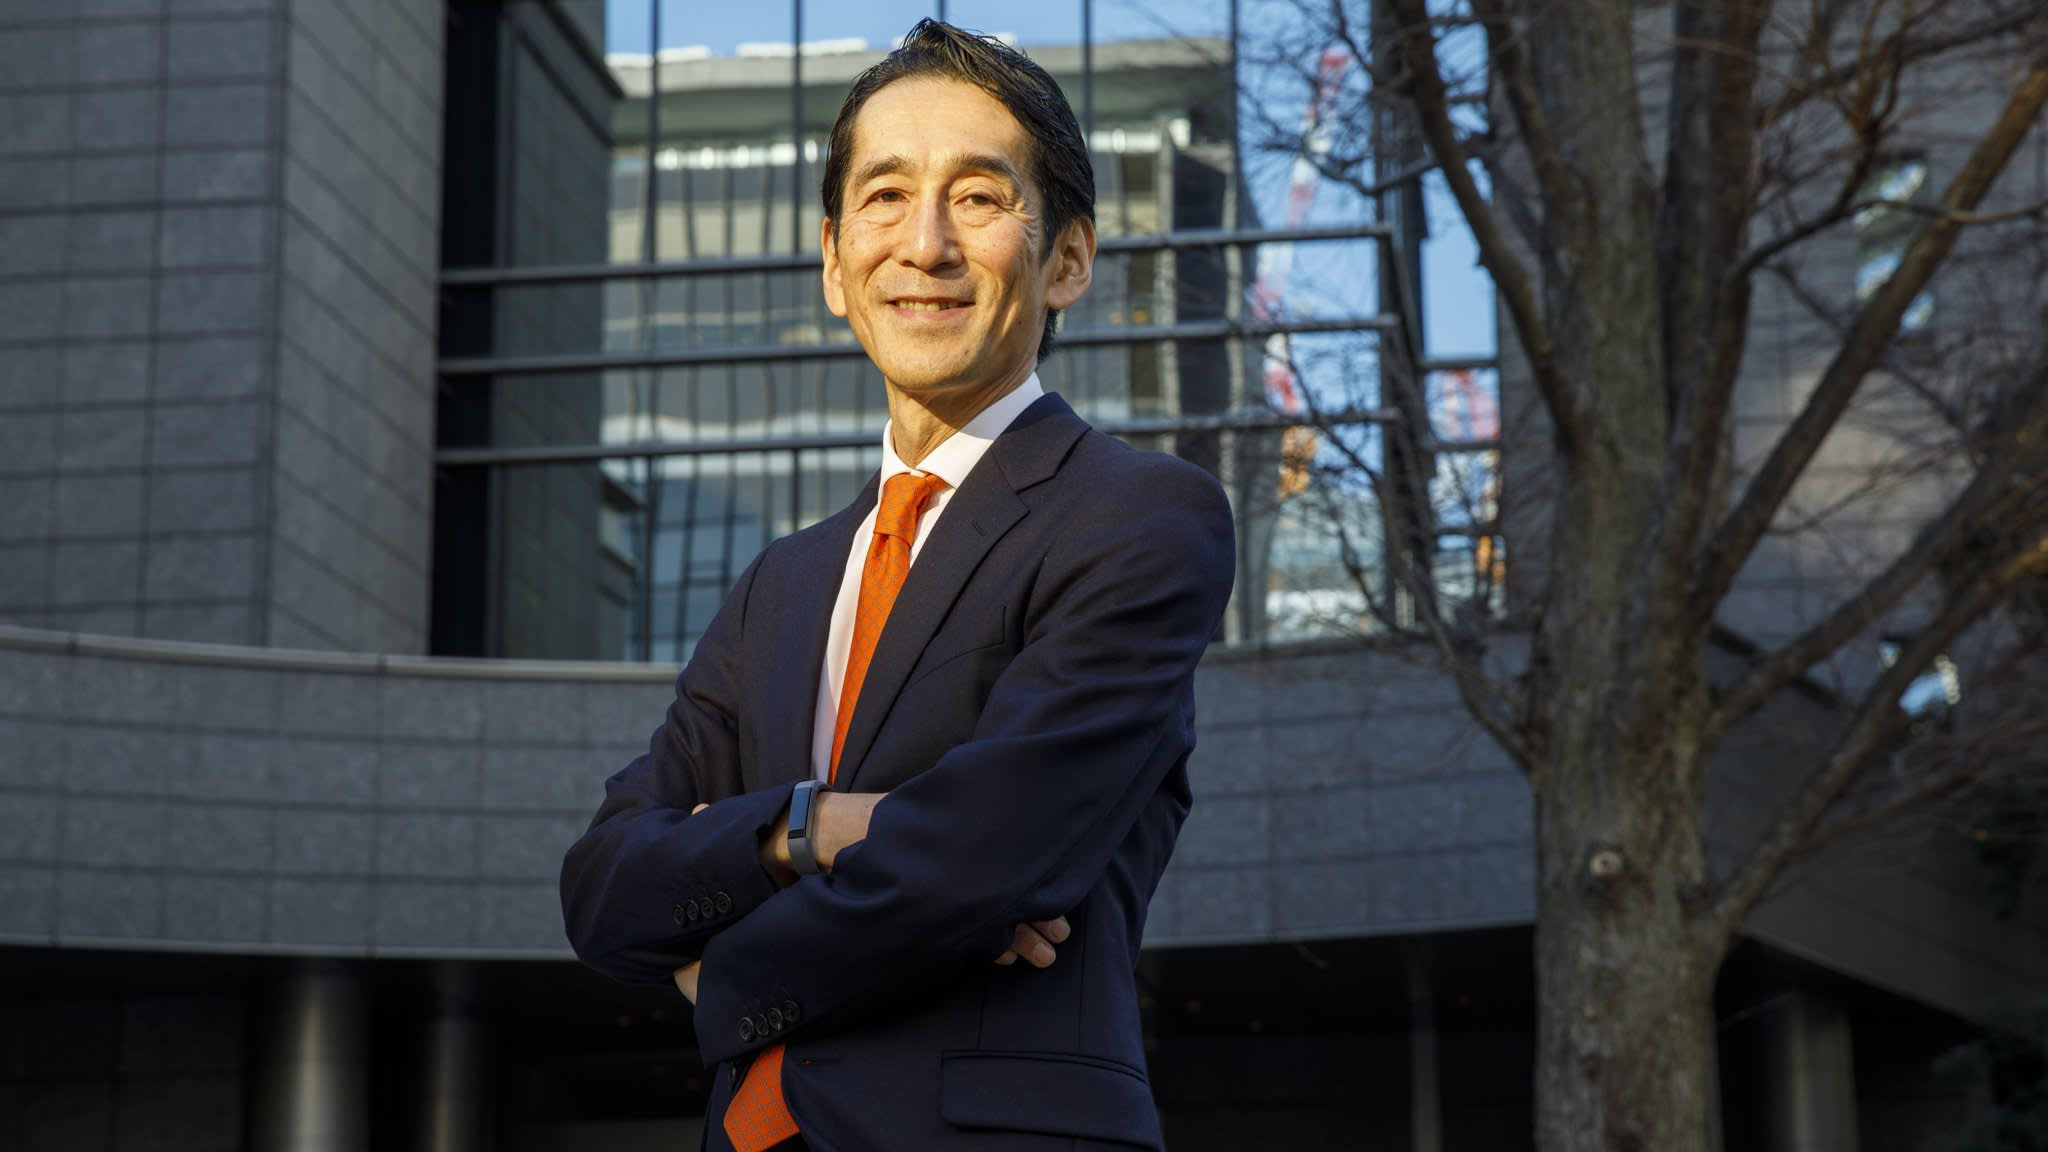 Japan's business schools focus on expansion | Financial Times